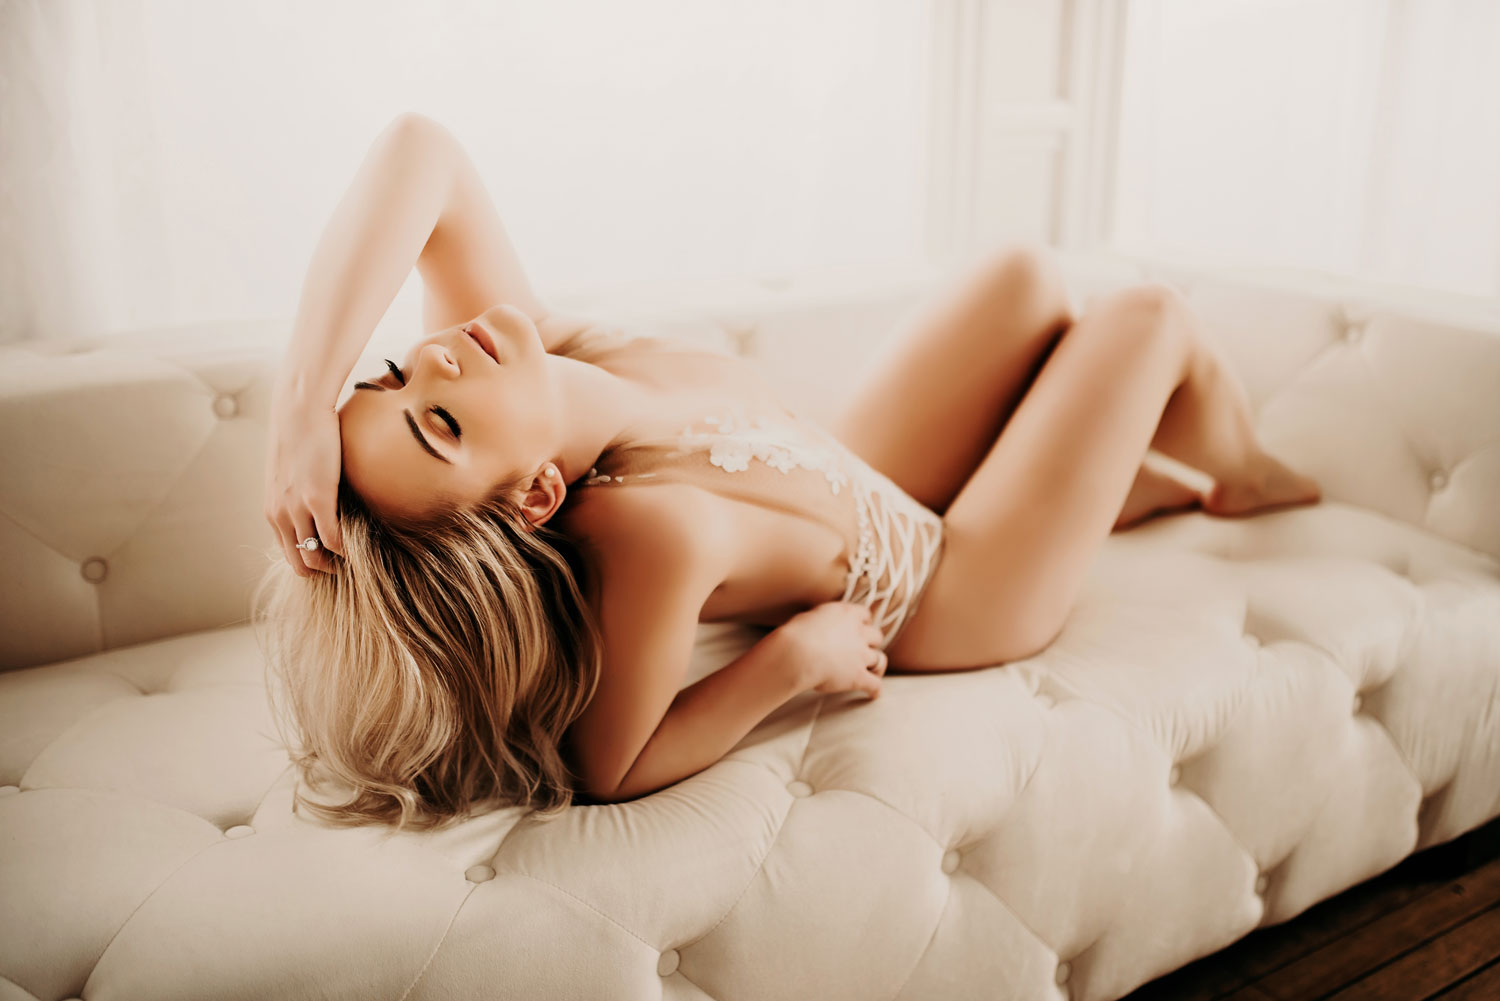 golden aura photography - the boudoir experience